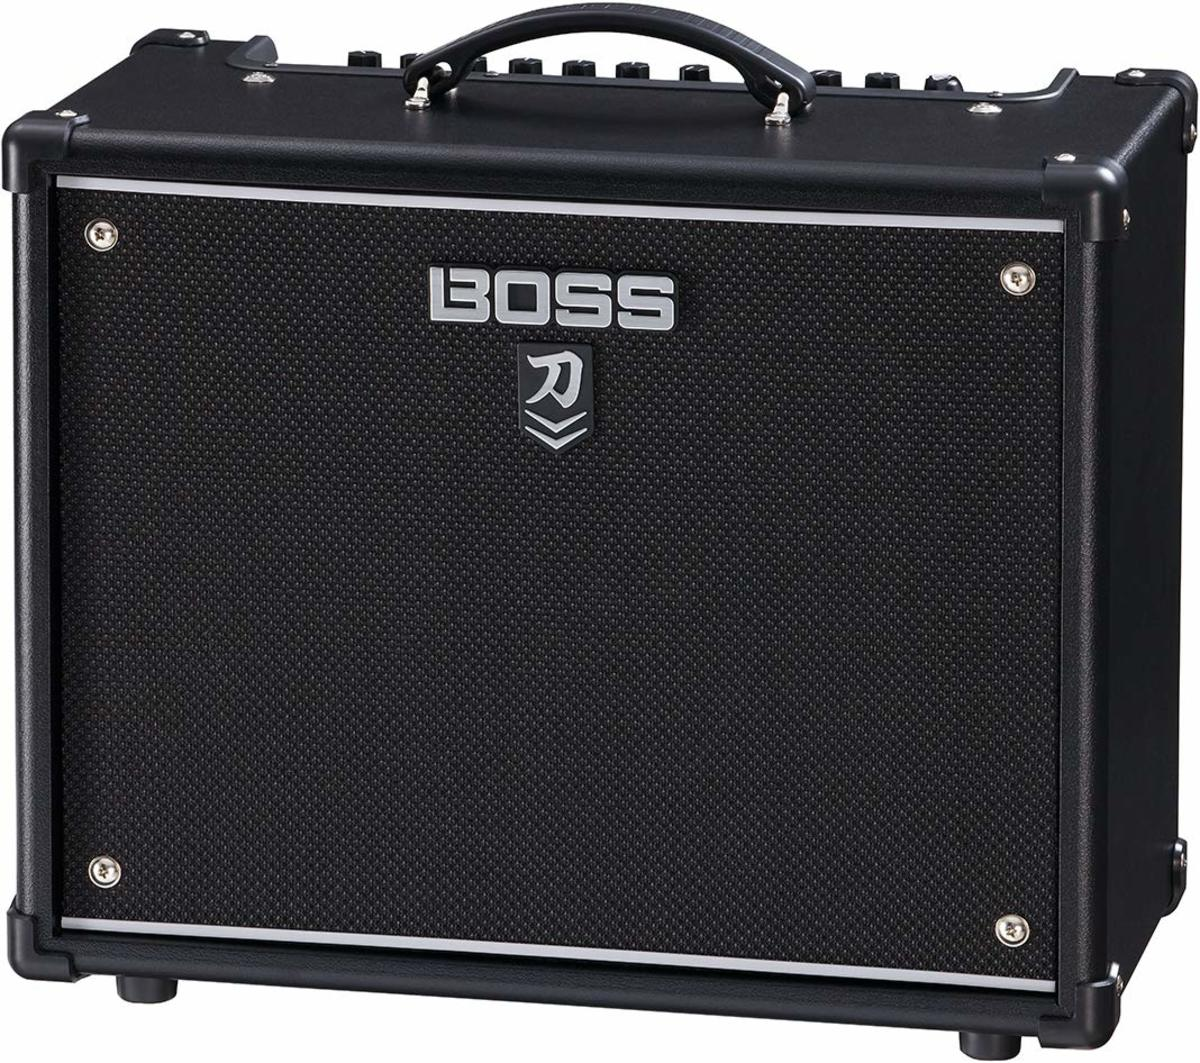 The BOSS Katana-50 mk II is one of the top guitar amps under $300.